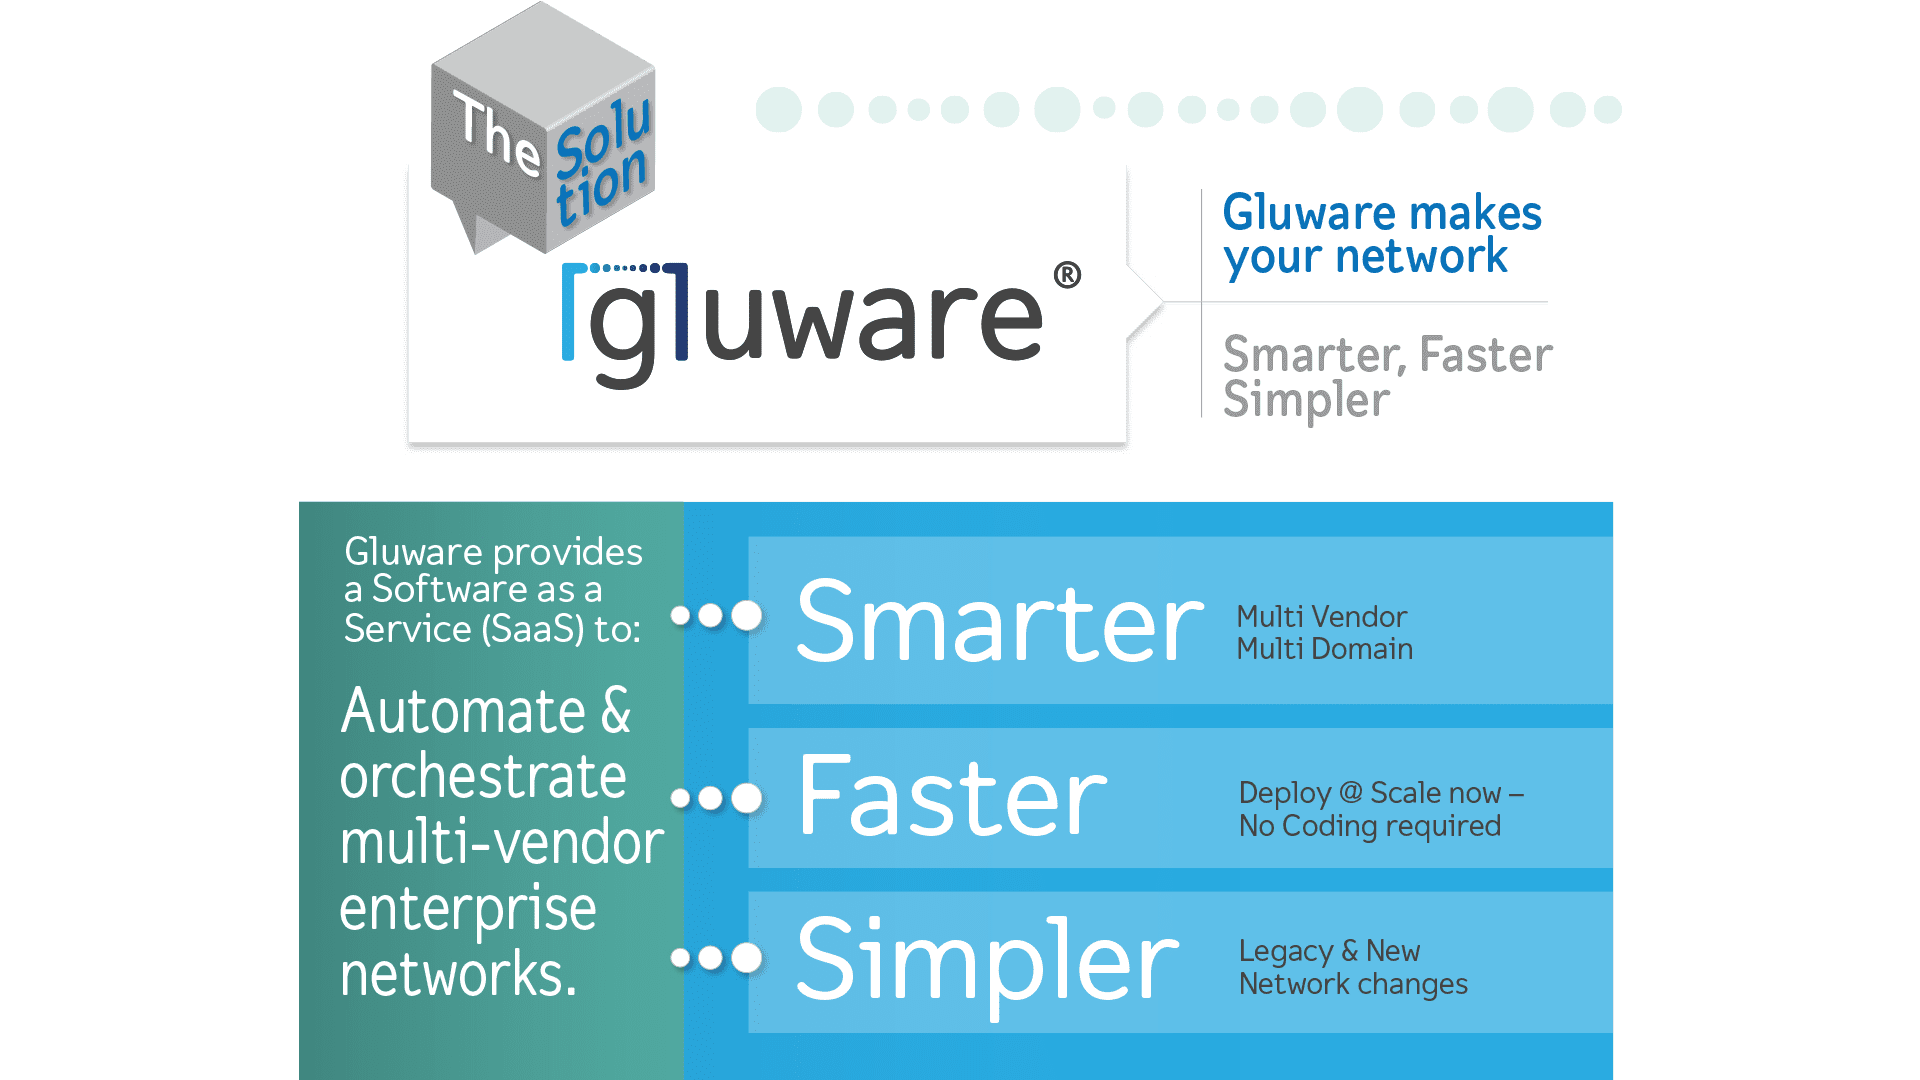 gluware is the solution